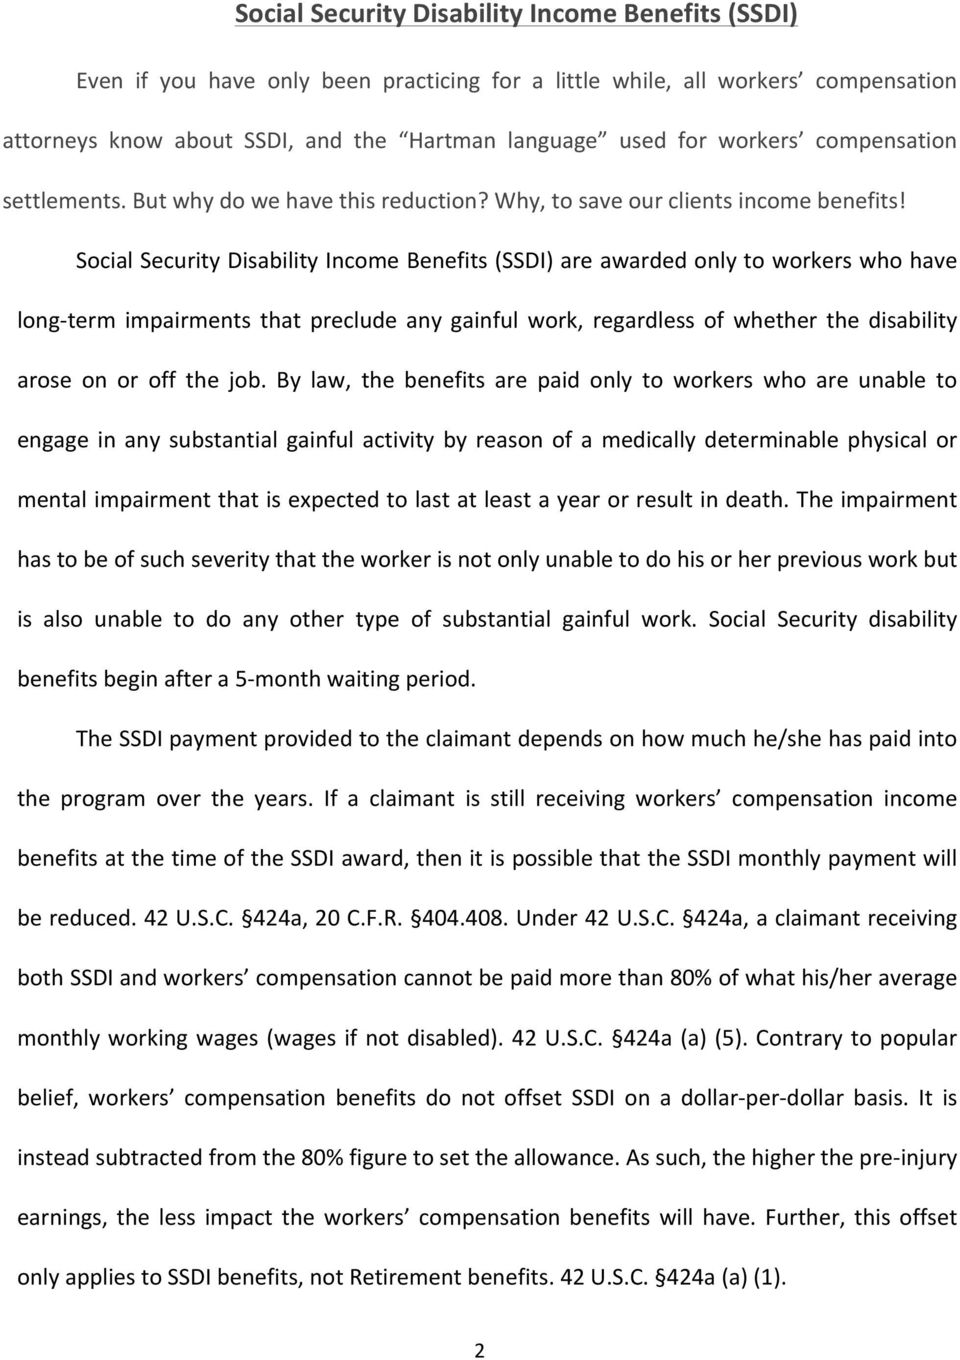 Social Security Disability Income Benefits (SSDI) are awarded only to workers who have long- term impairments that preclude any gainful work, regardless of whether the disability arose on or off the